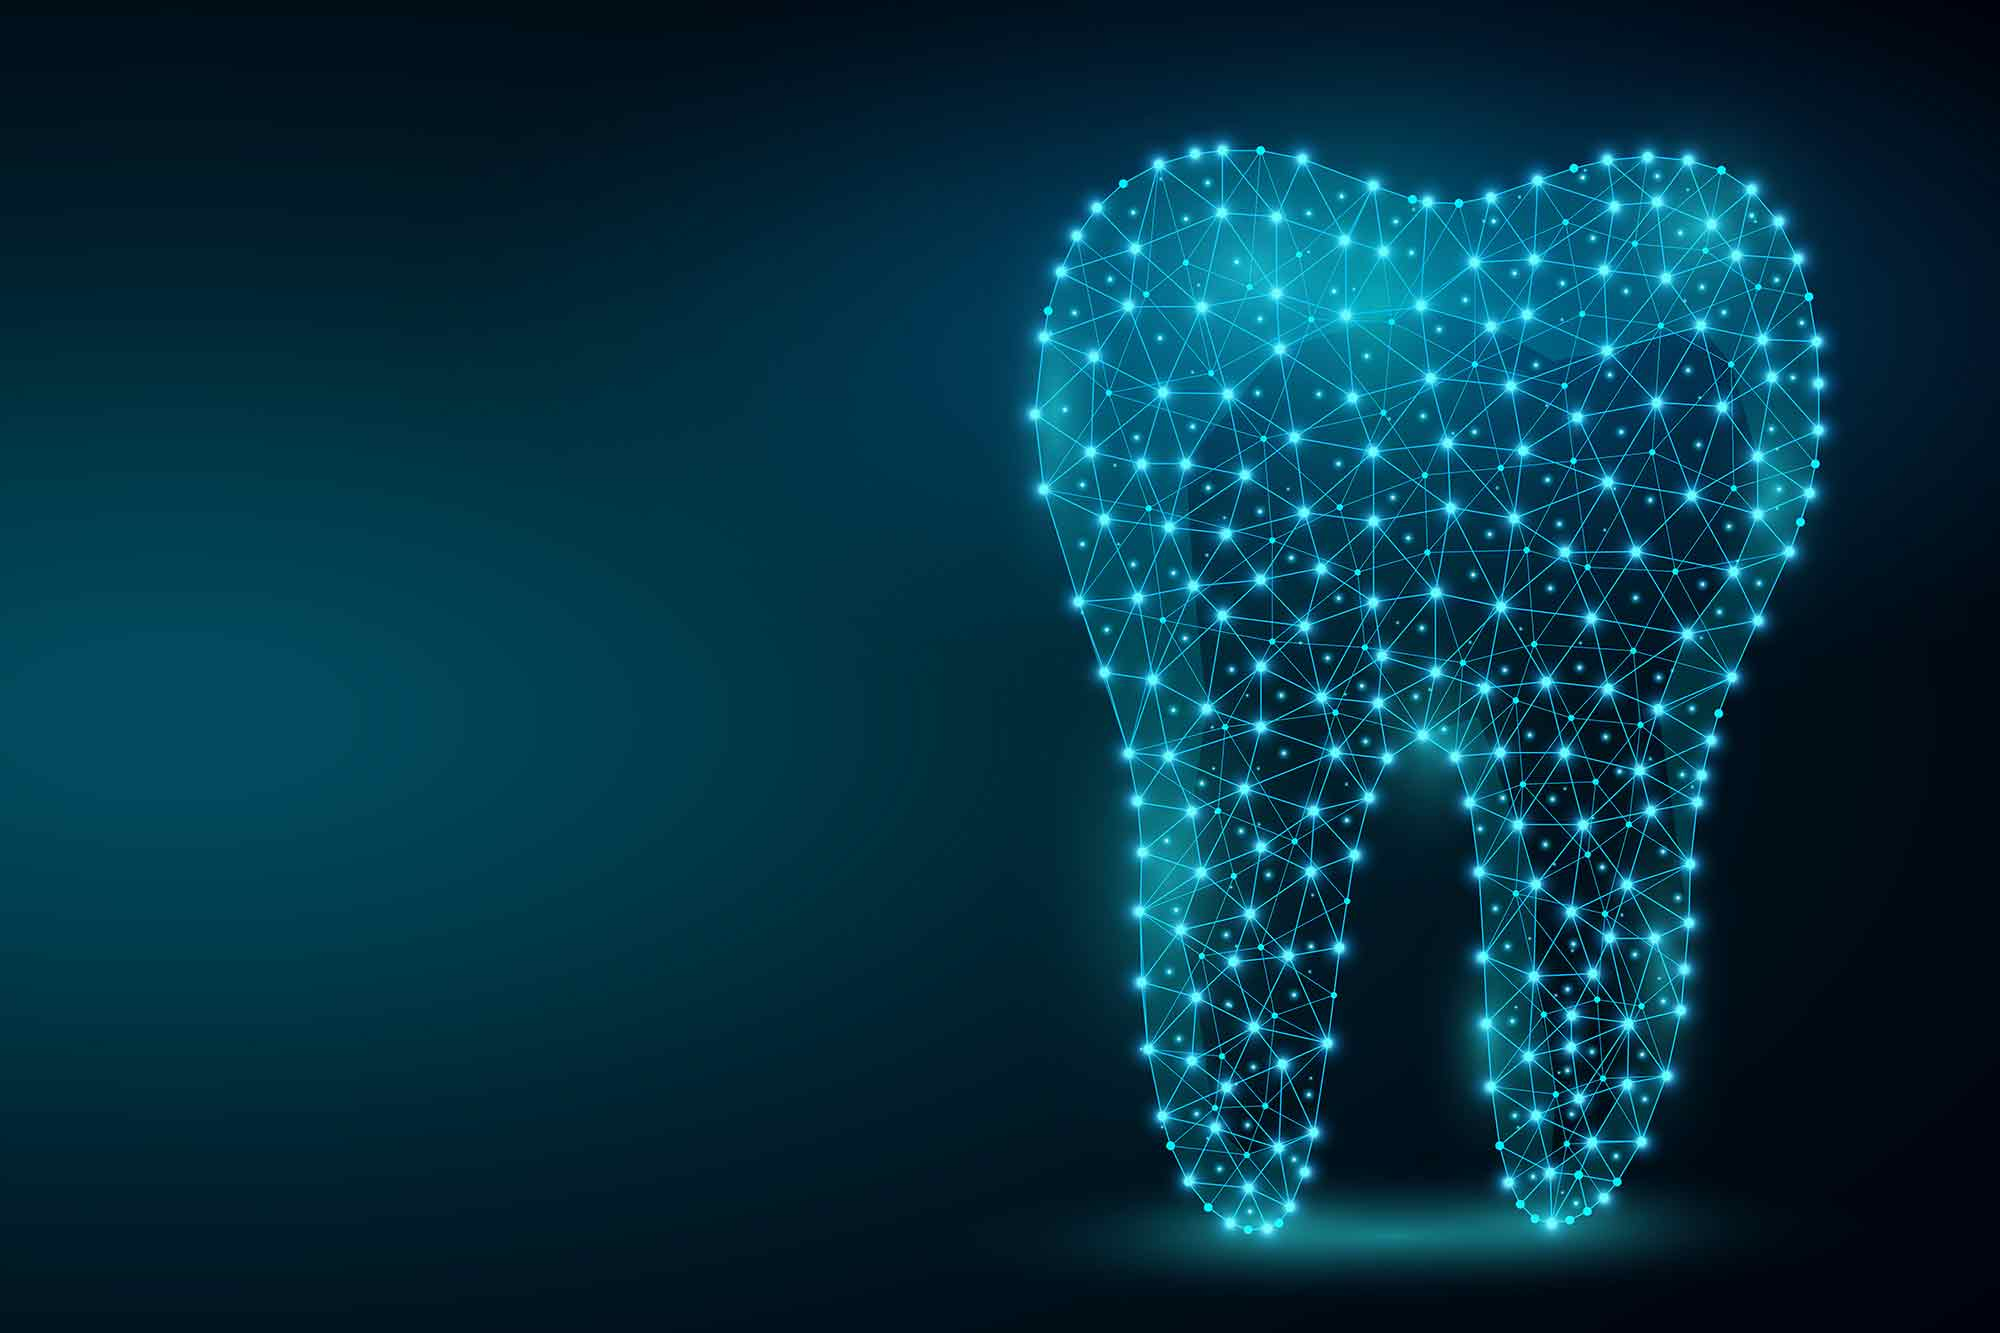 Artificial intelligence systems are able to identify tooth decay more accurately than human dentists, new research suggests